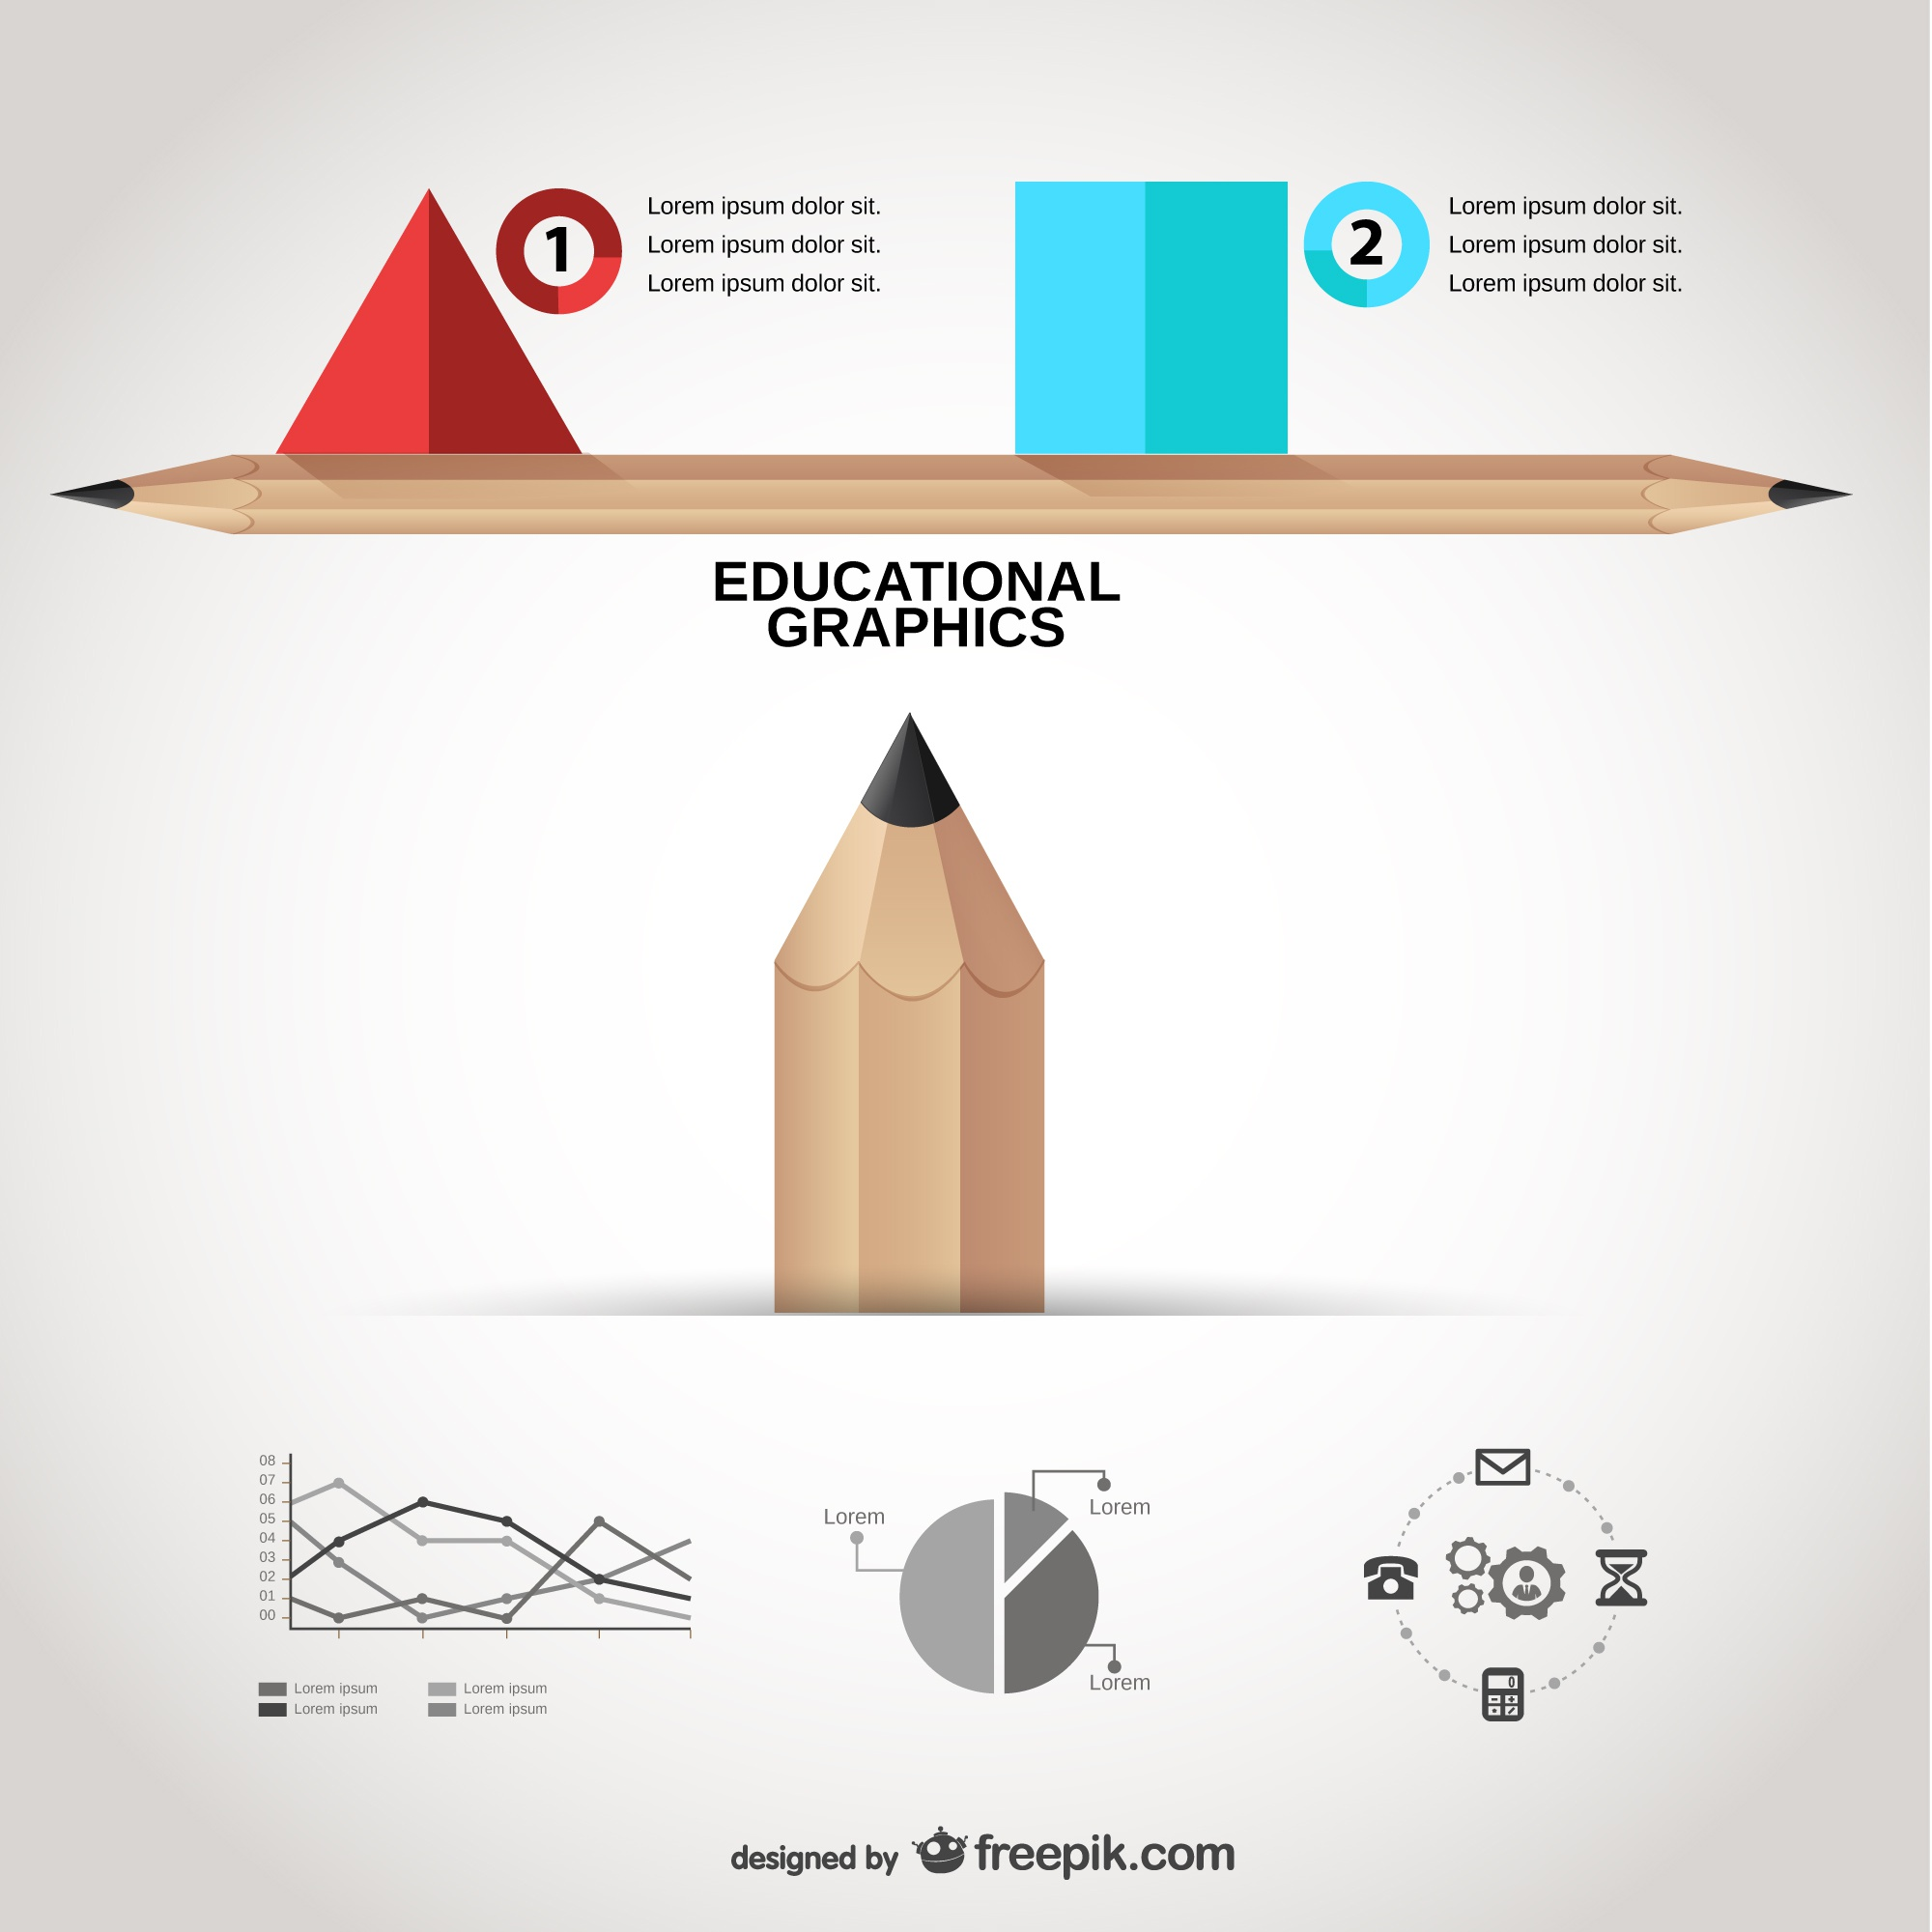 Educational graphics template